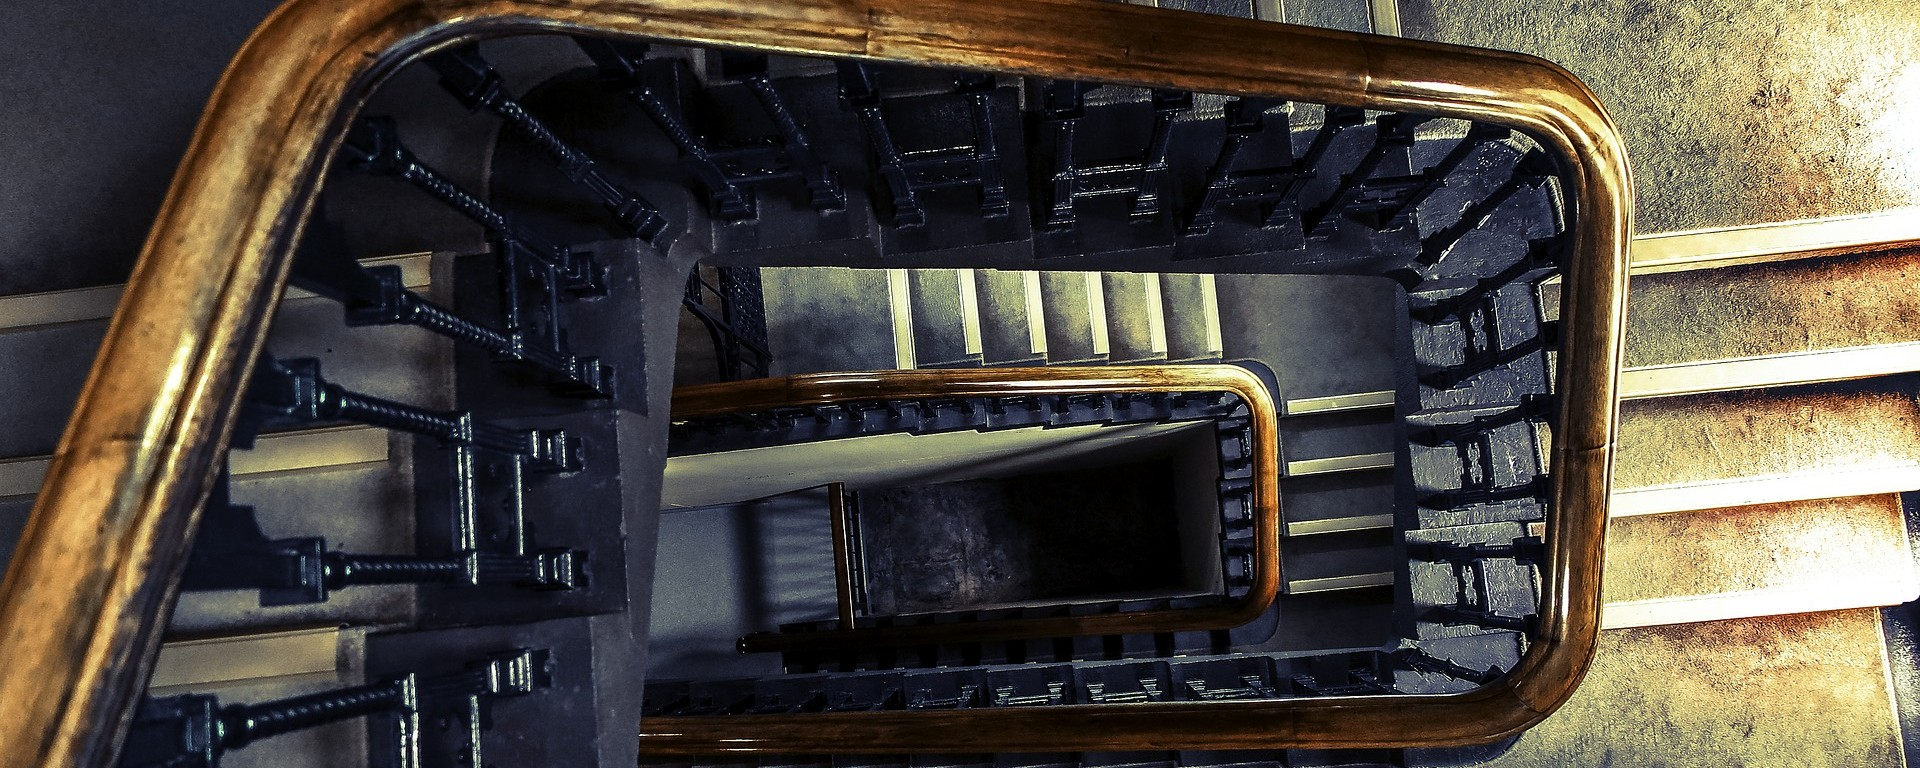 Apartment building stairs with stairwell